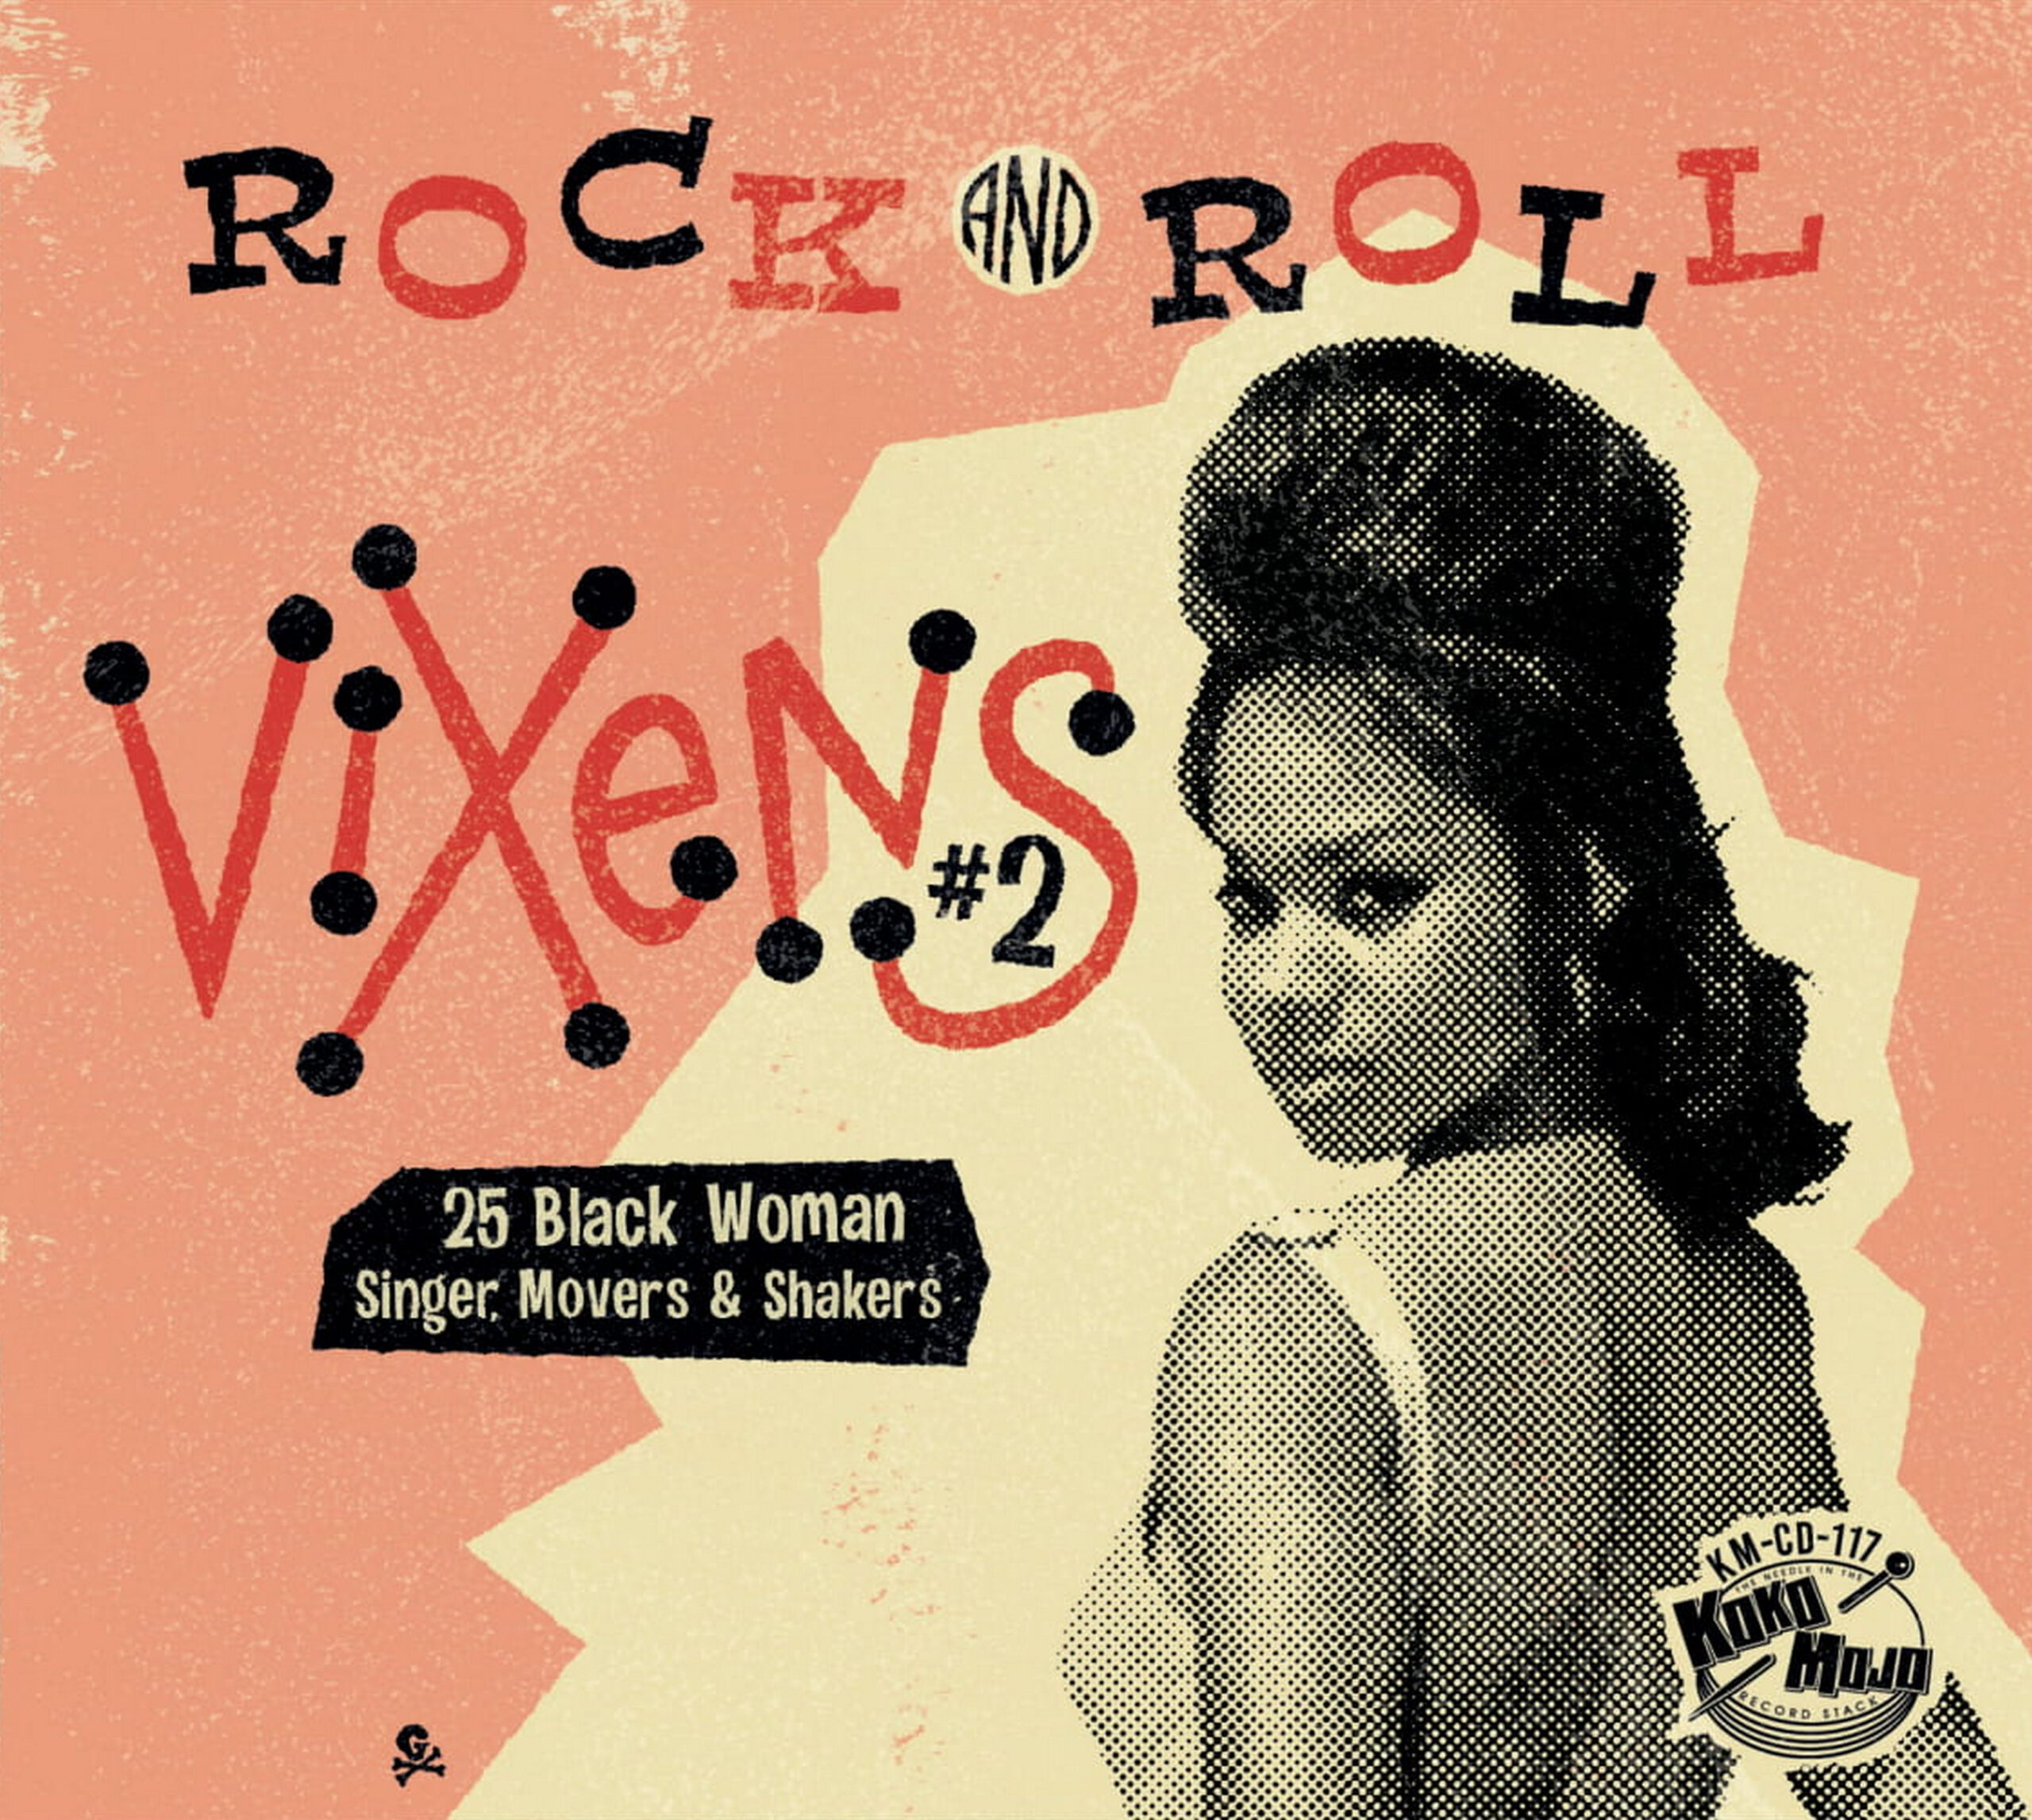 Various Artists - Rock And Roll Vixen 2 – 25 Black Woman Singer, Movers & Shakers